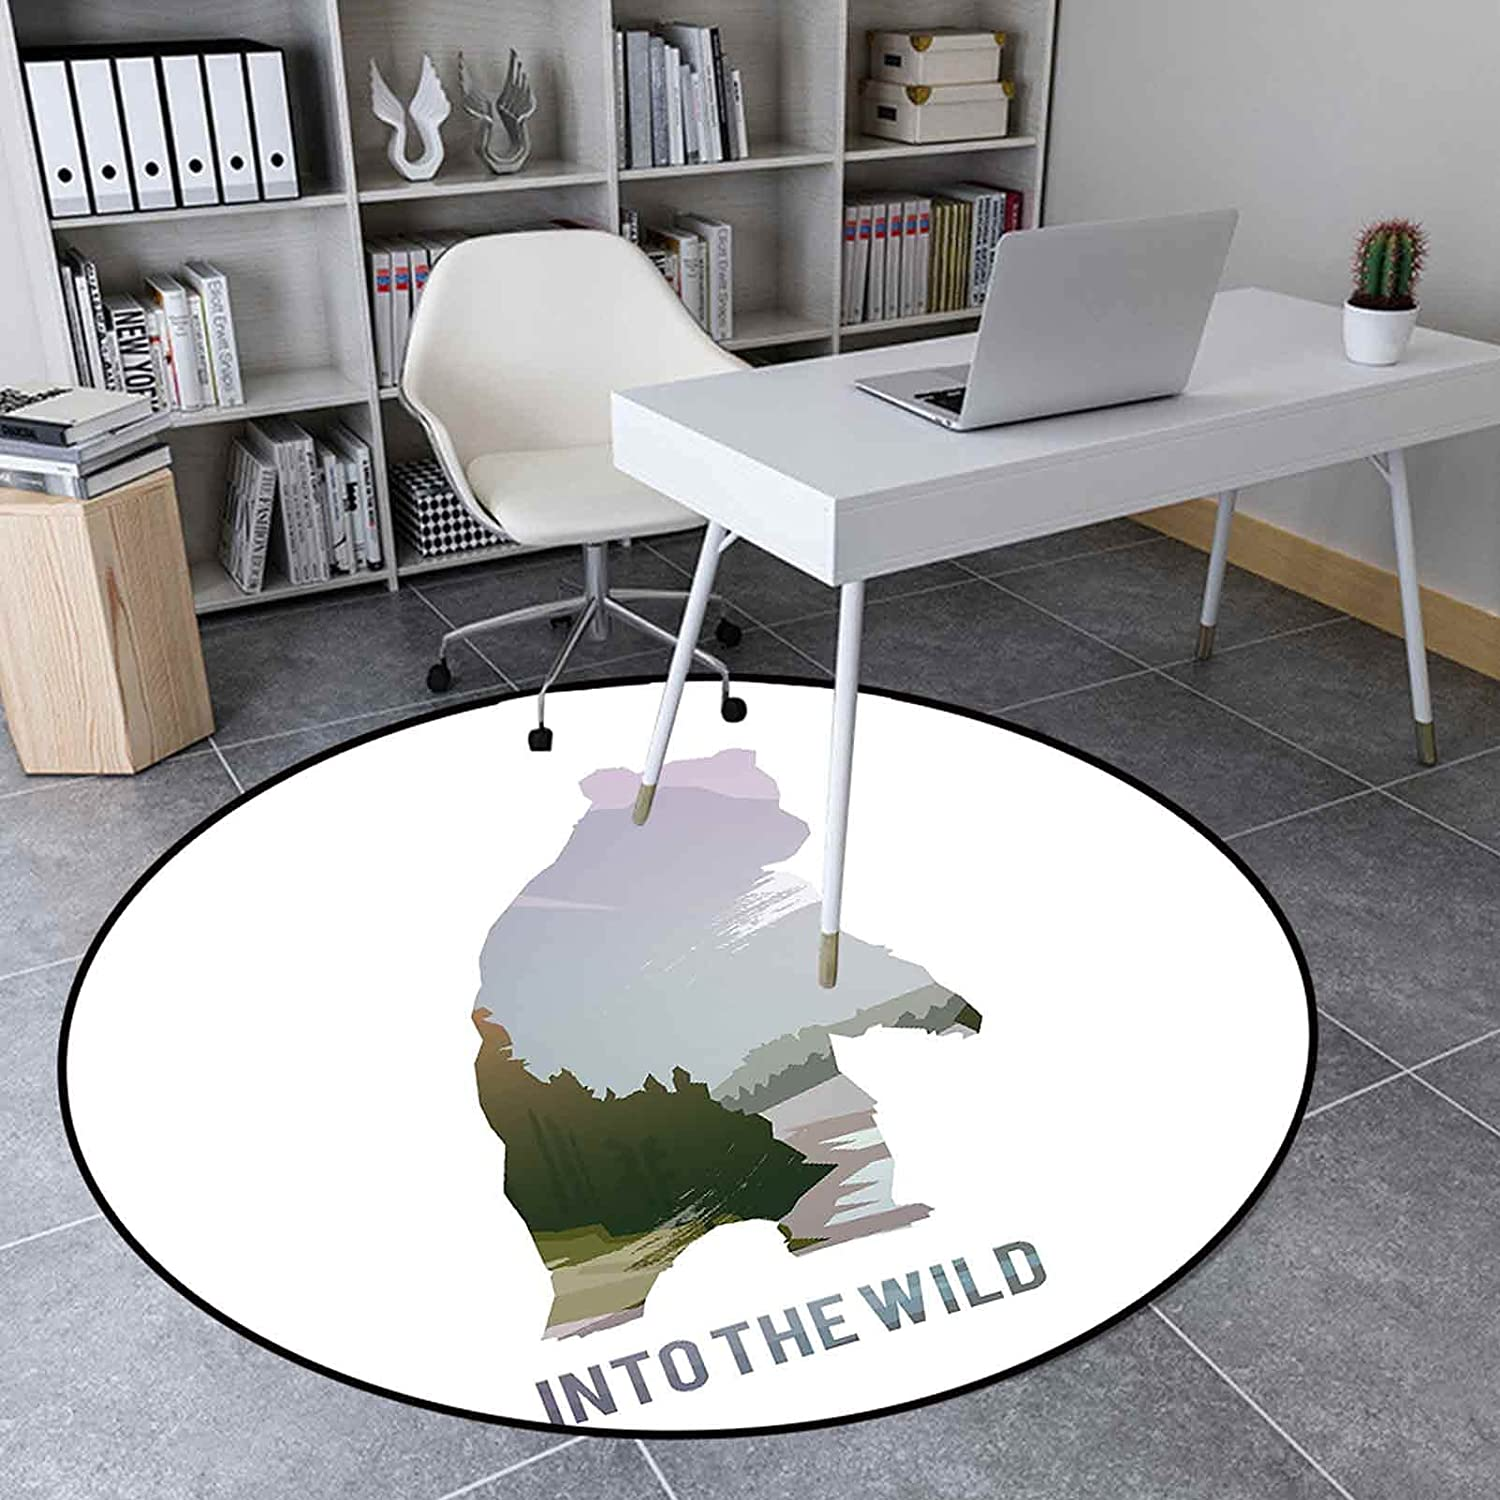 Popular product Round Area Rug Ranking TOP14 3.3 Ft Living Room Bedroom for Carpet